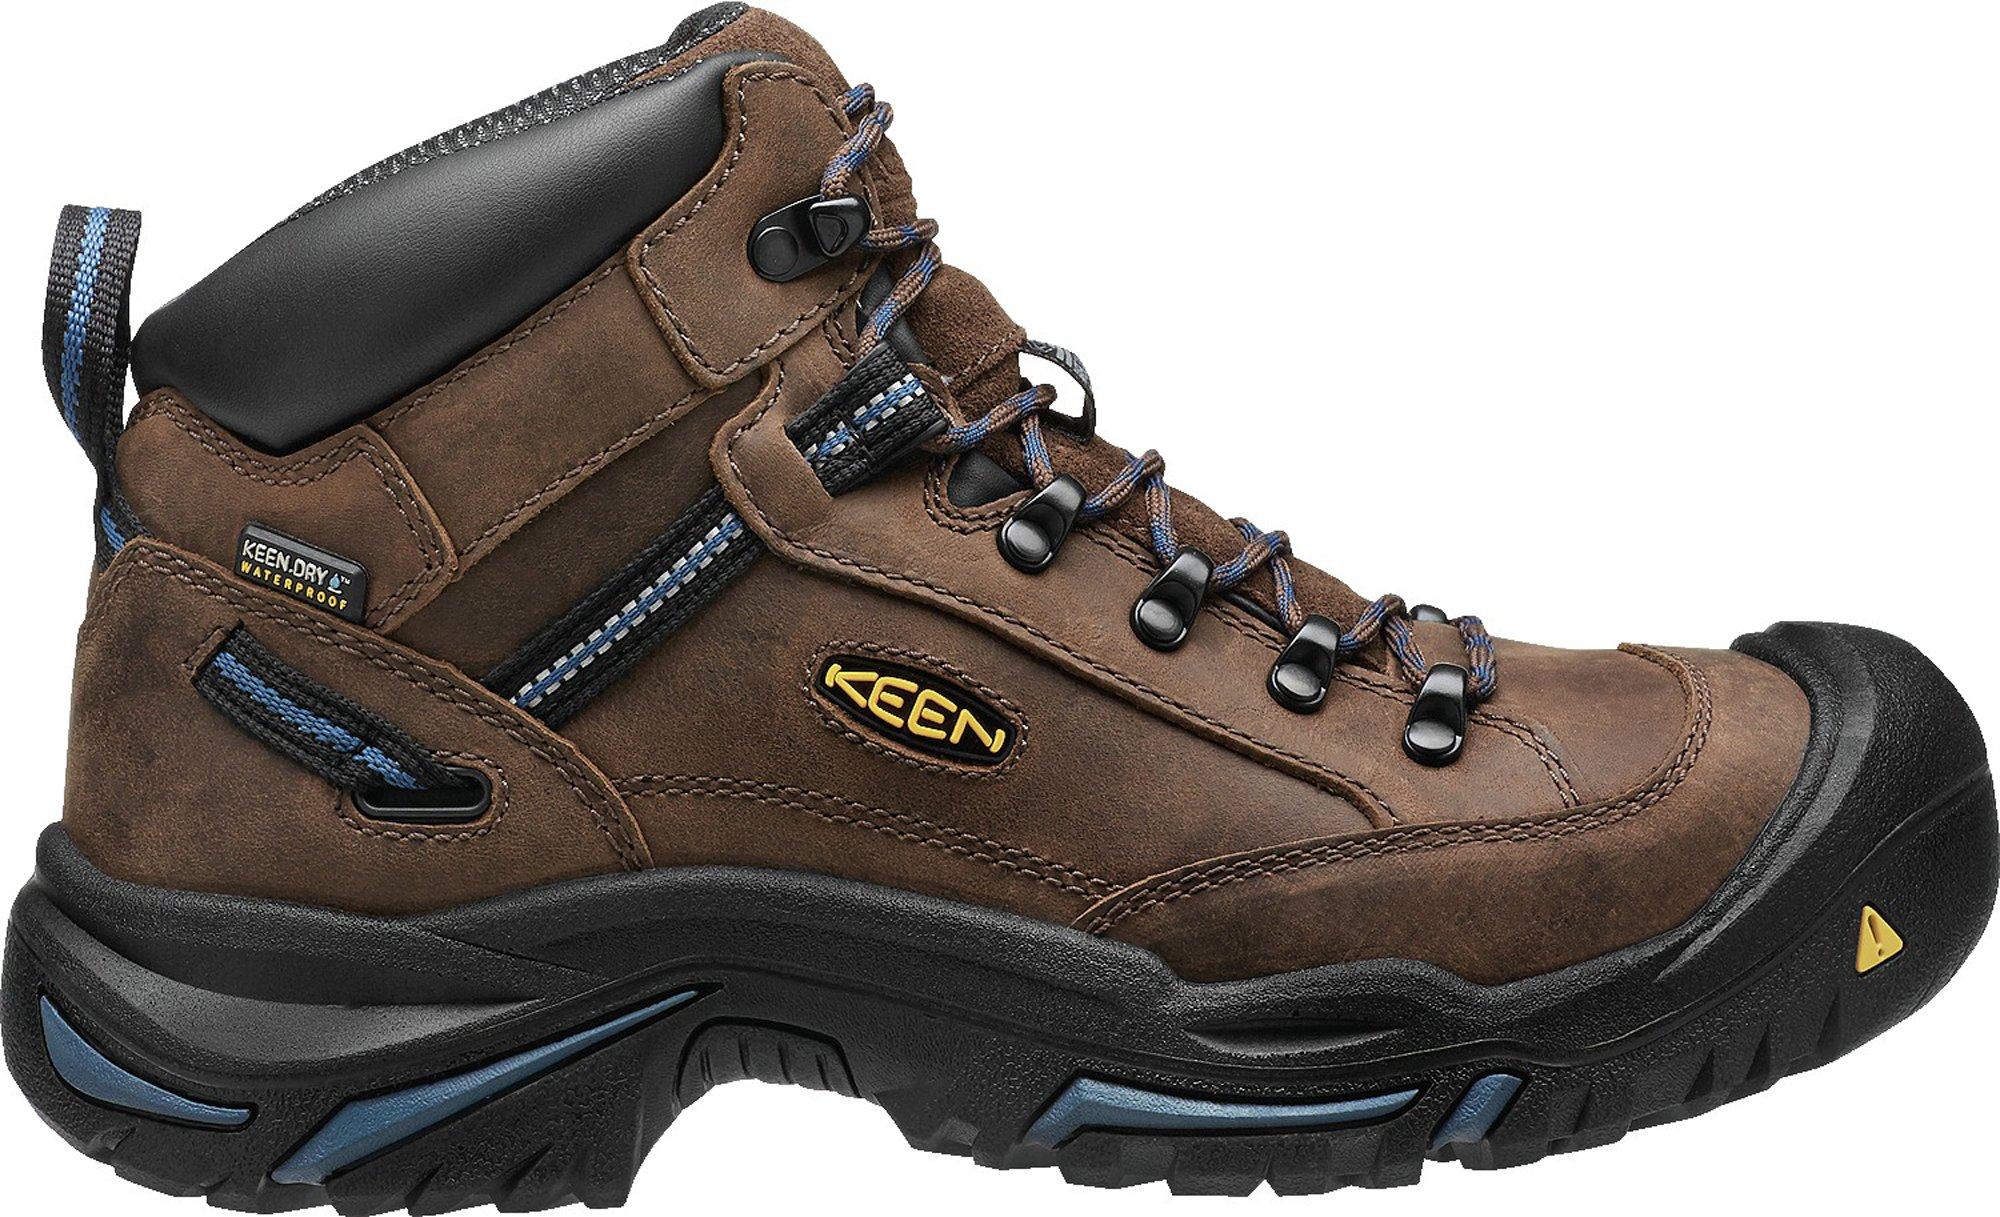 Keen Utility Men's Braddock Mid AL Waterproof M Work Boot, Bison/Ensign Blue, 11 D US